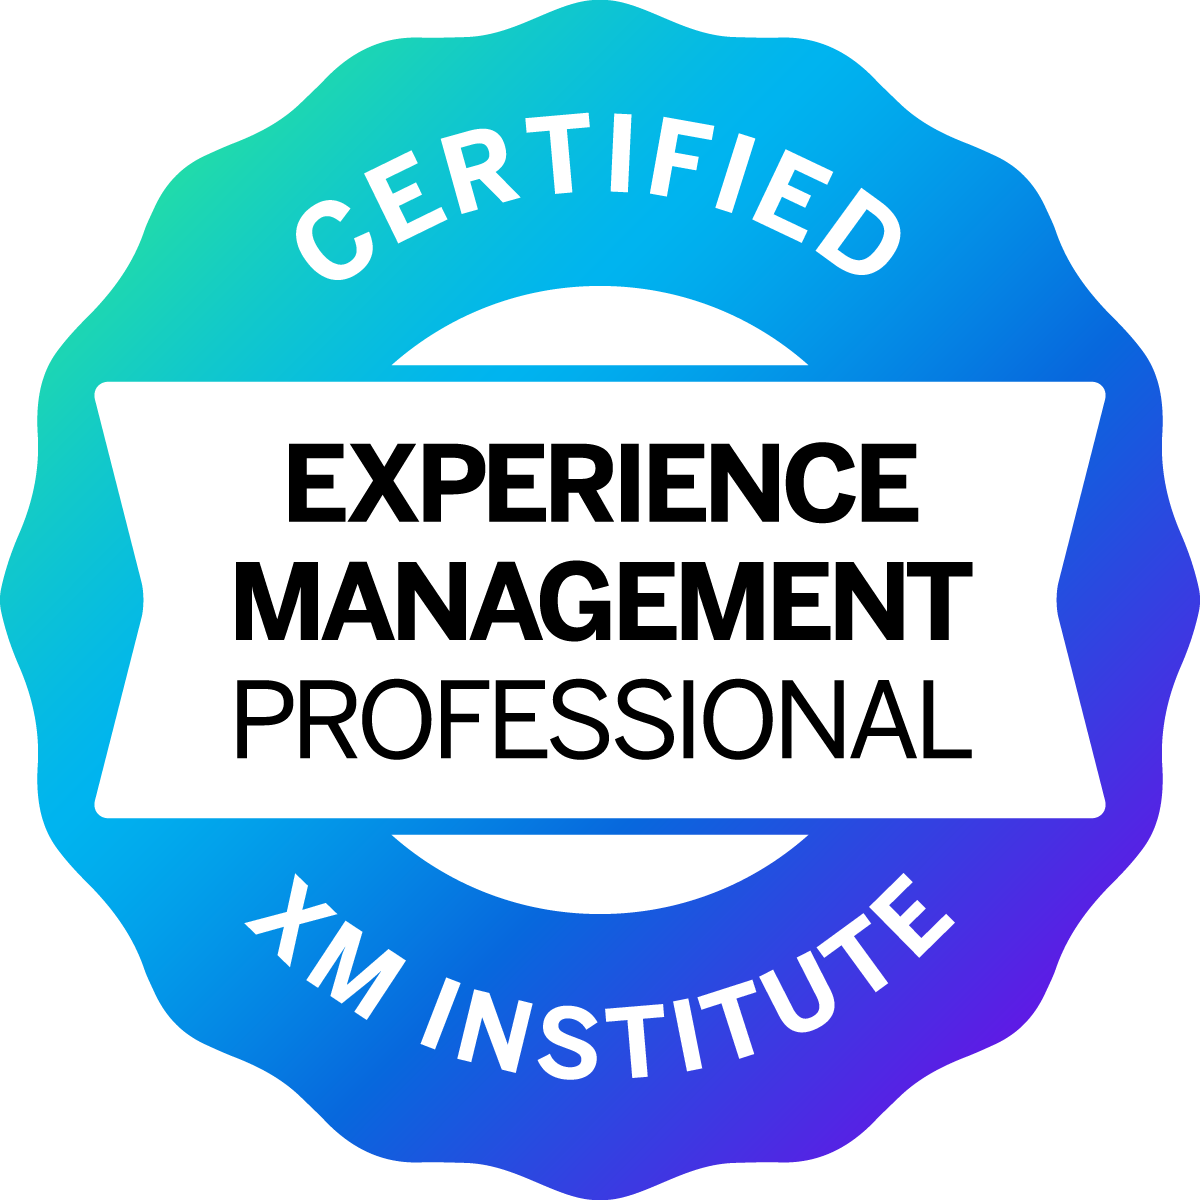 XM Institute Certified Experience Management Professional Logo